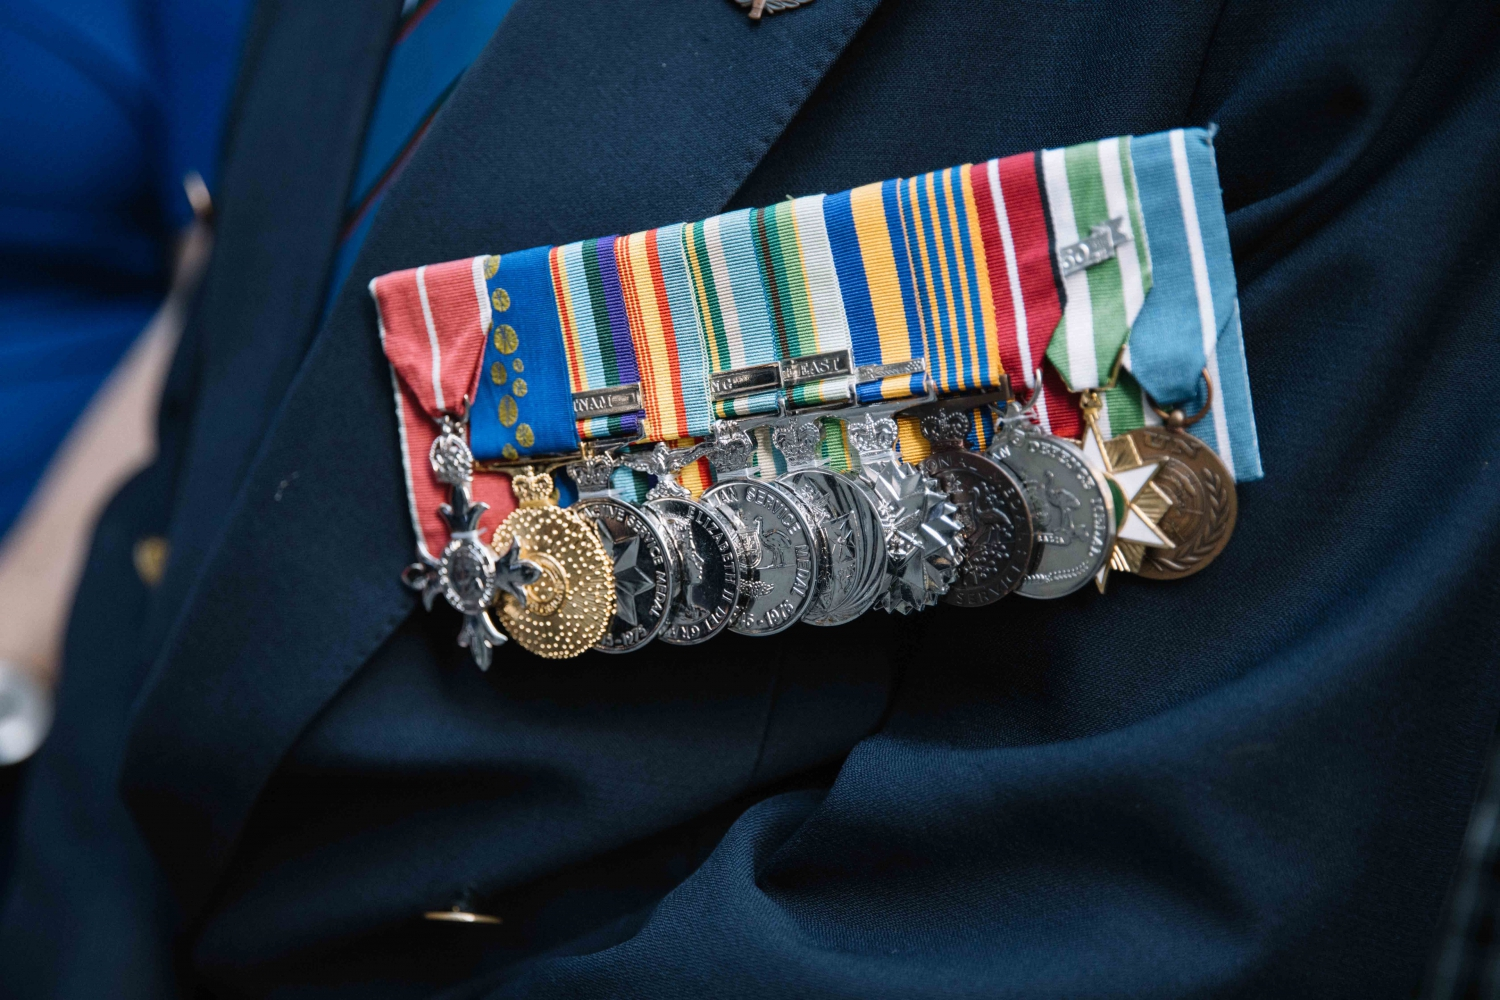 Cardly is helping Australians say thank you to Veterans this Anzac day